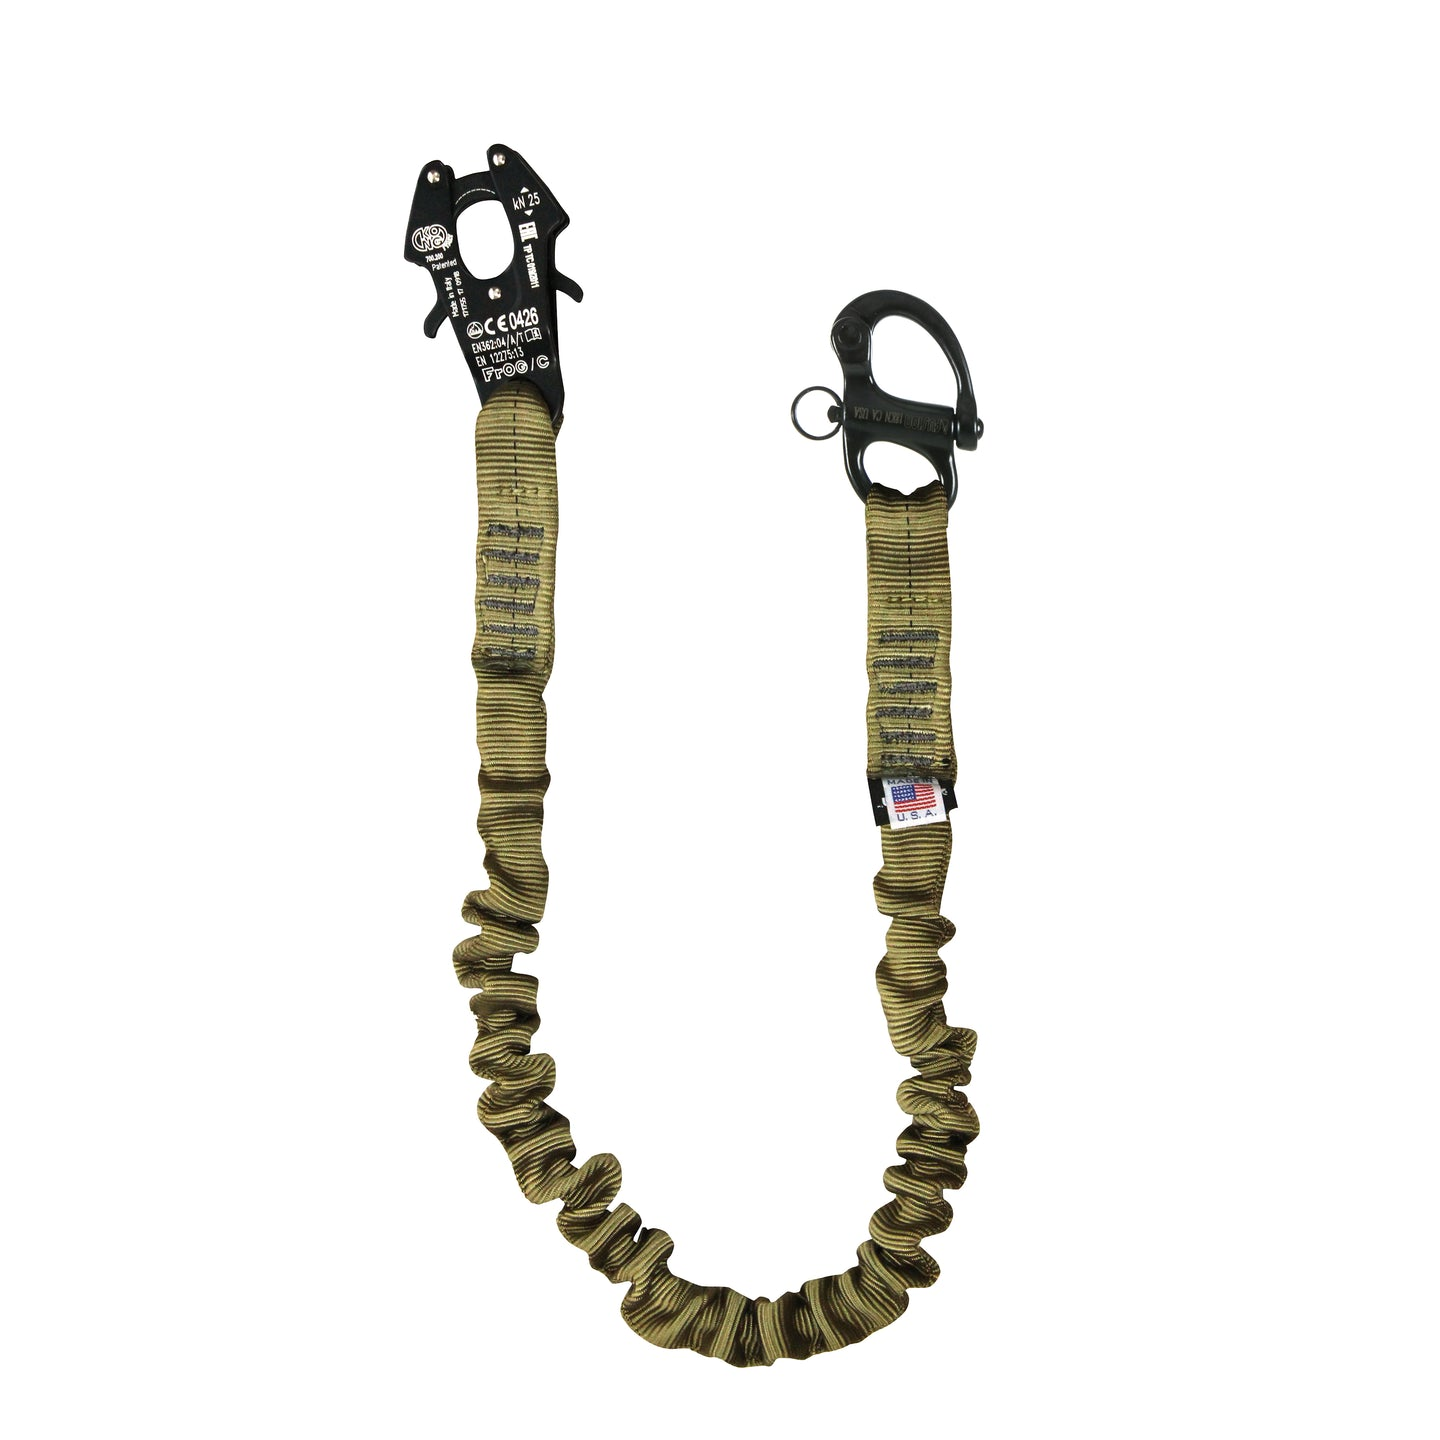 EXTRACTION/PERSONAL RETENTION LANYARD W/KONG FROG